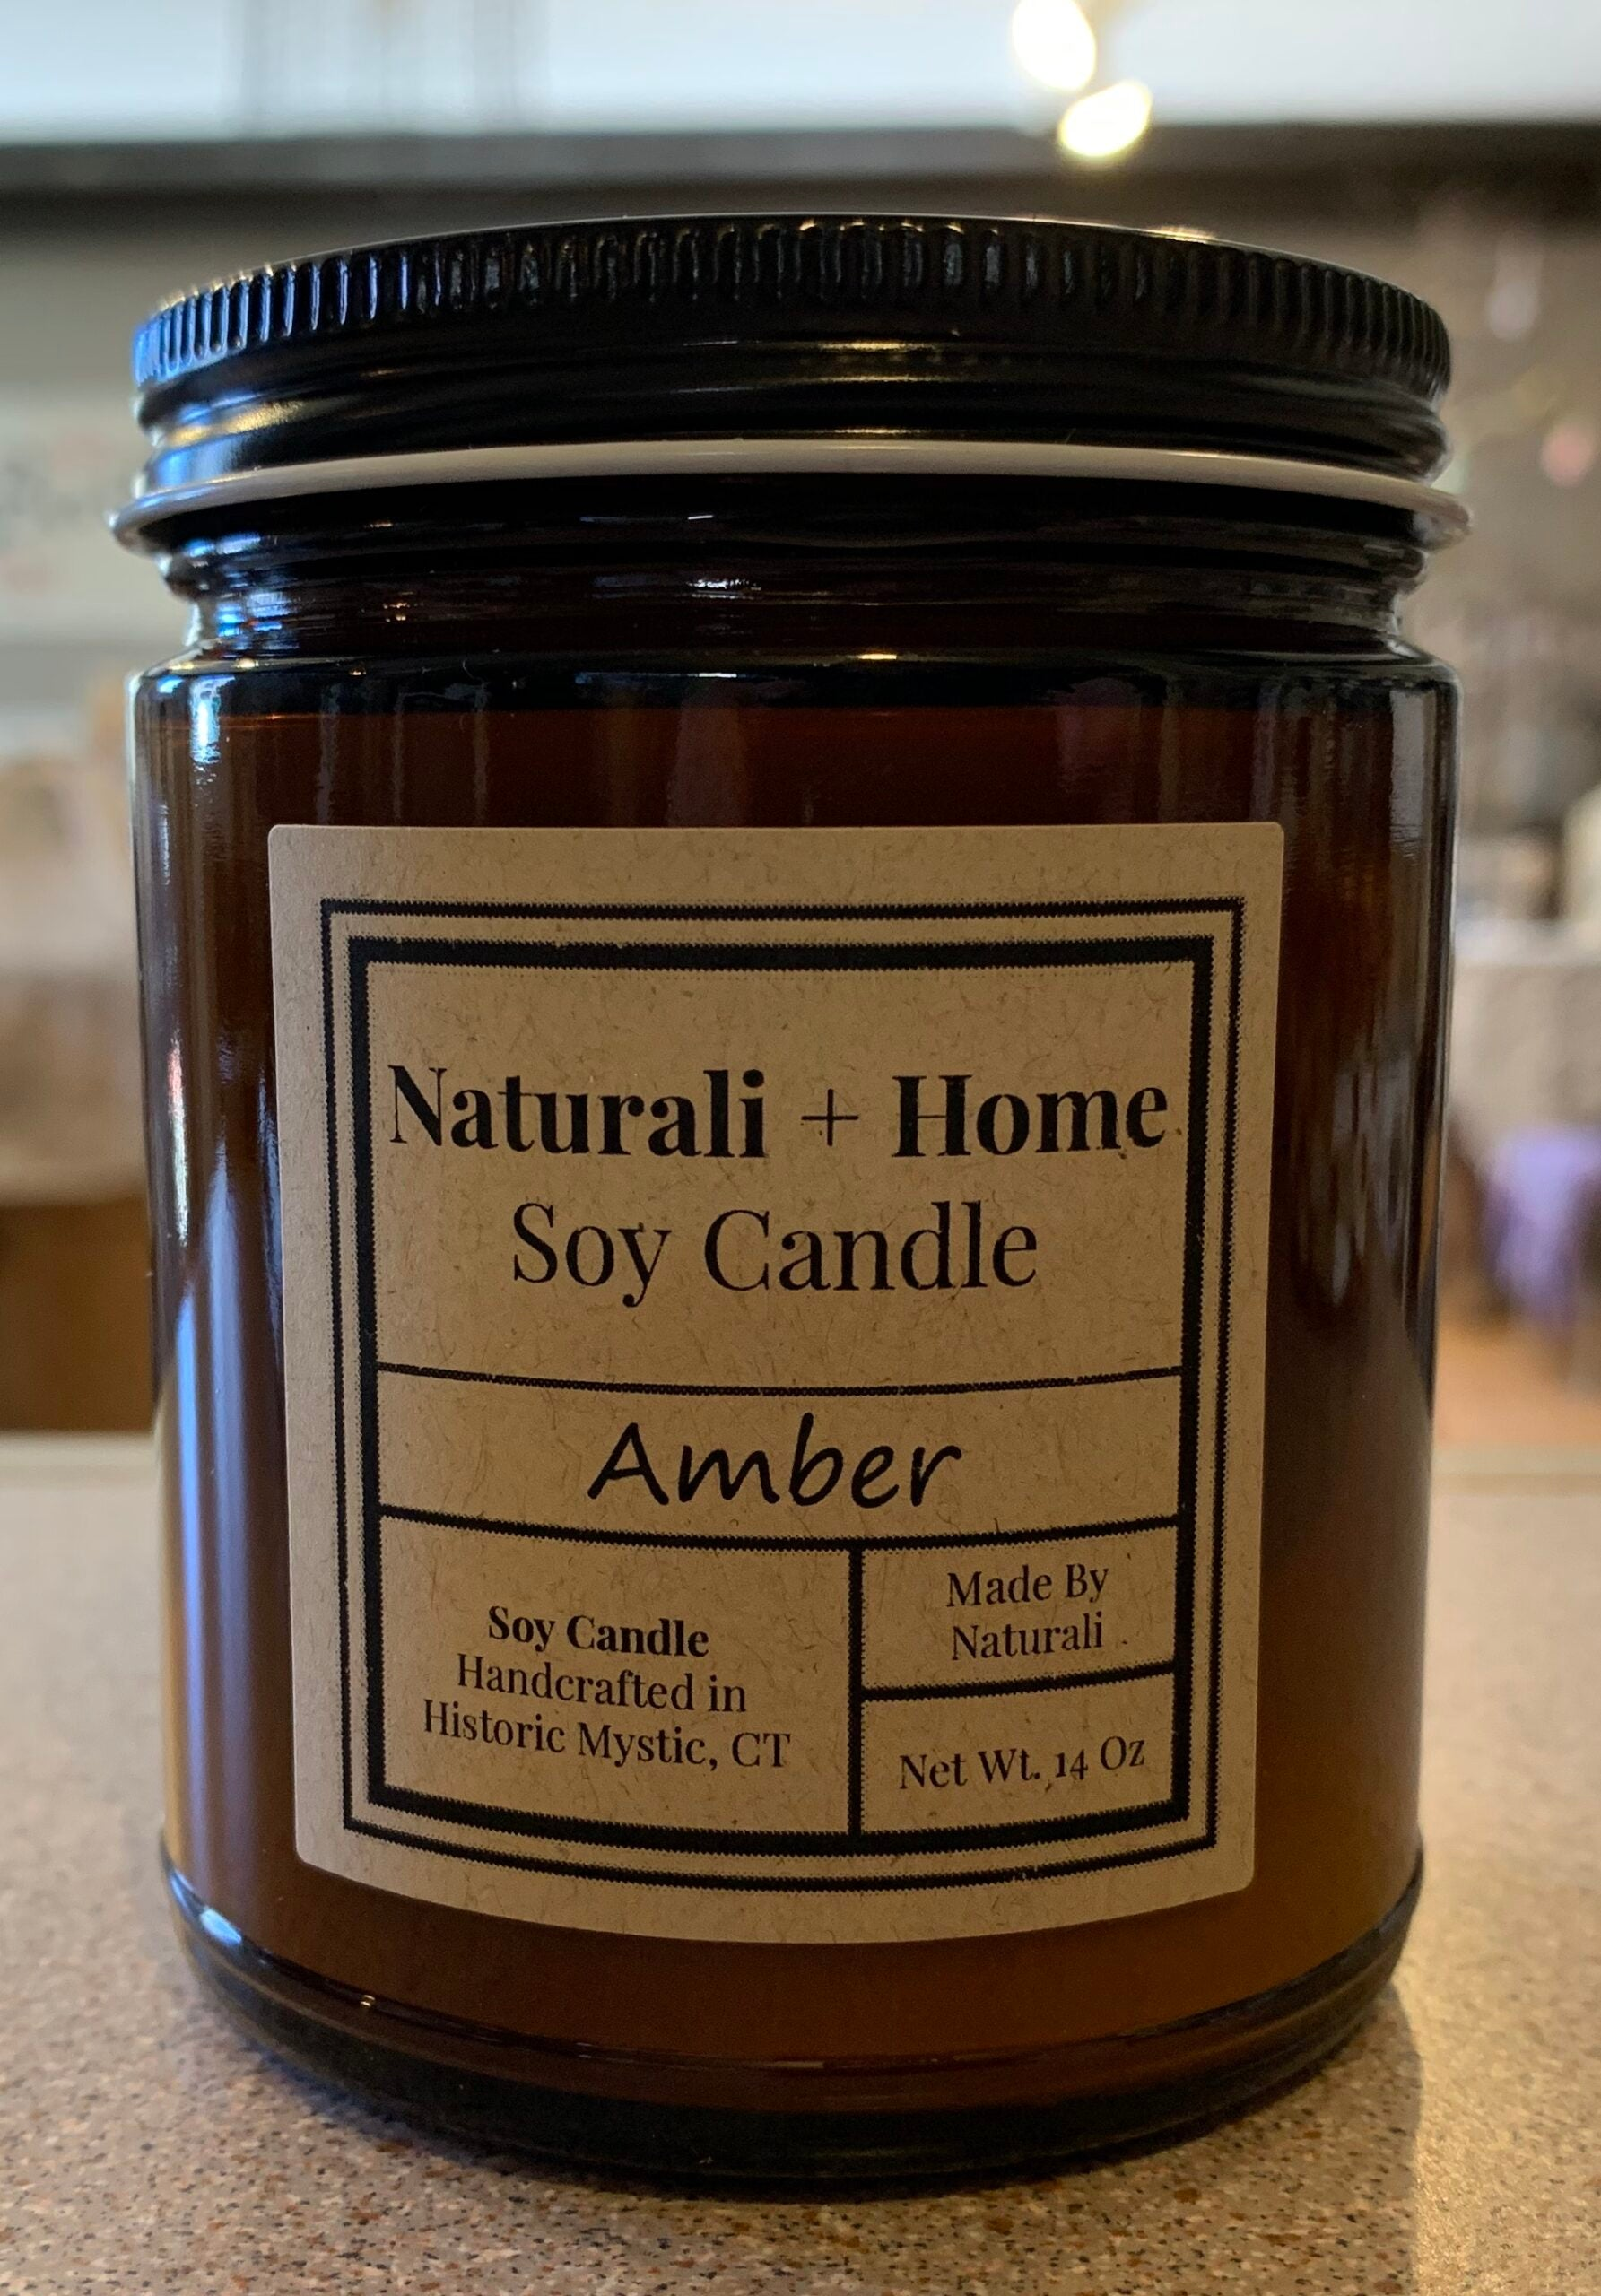 Amber Soy Candle - Naturali Home